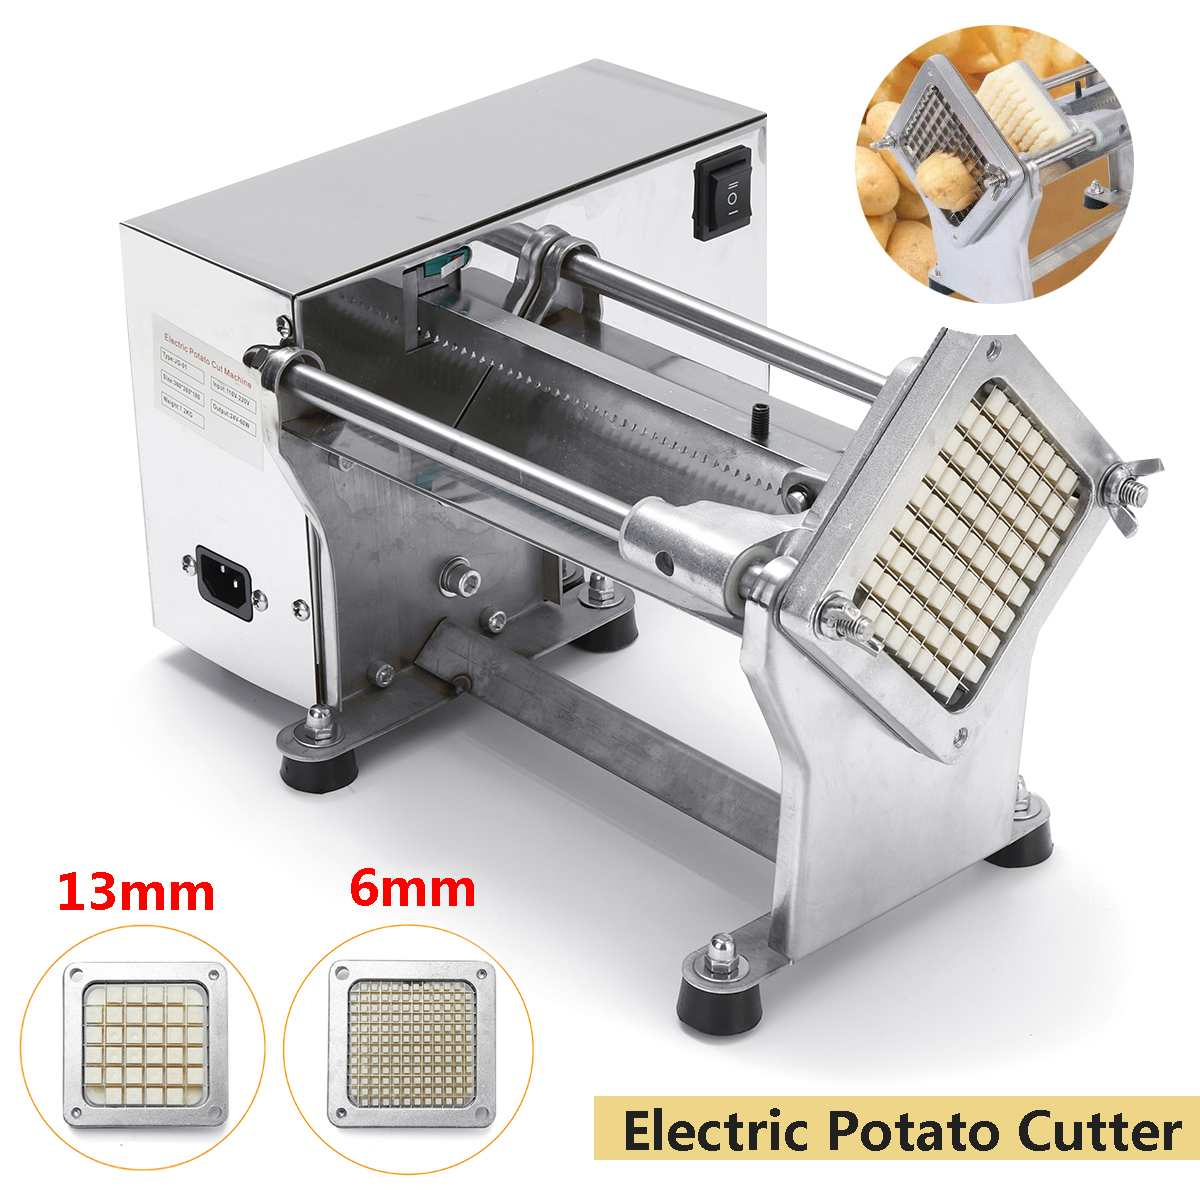 220V Commercial Electric French Fry Cutters Electric Potato Chip Cutter French Fries Cutting Slicer Stainless Steel Machine